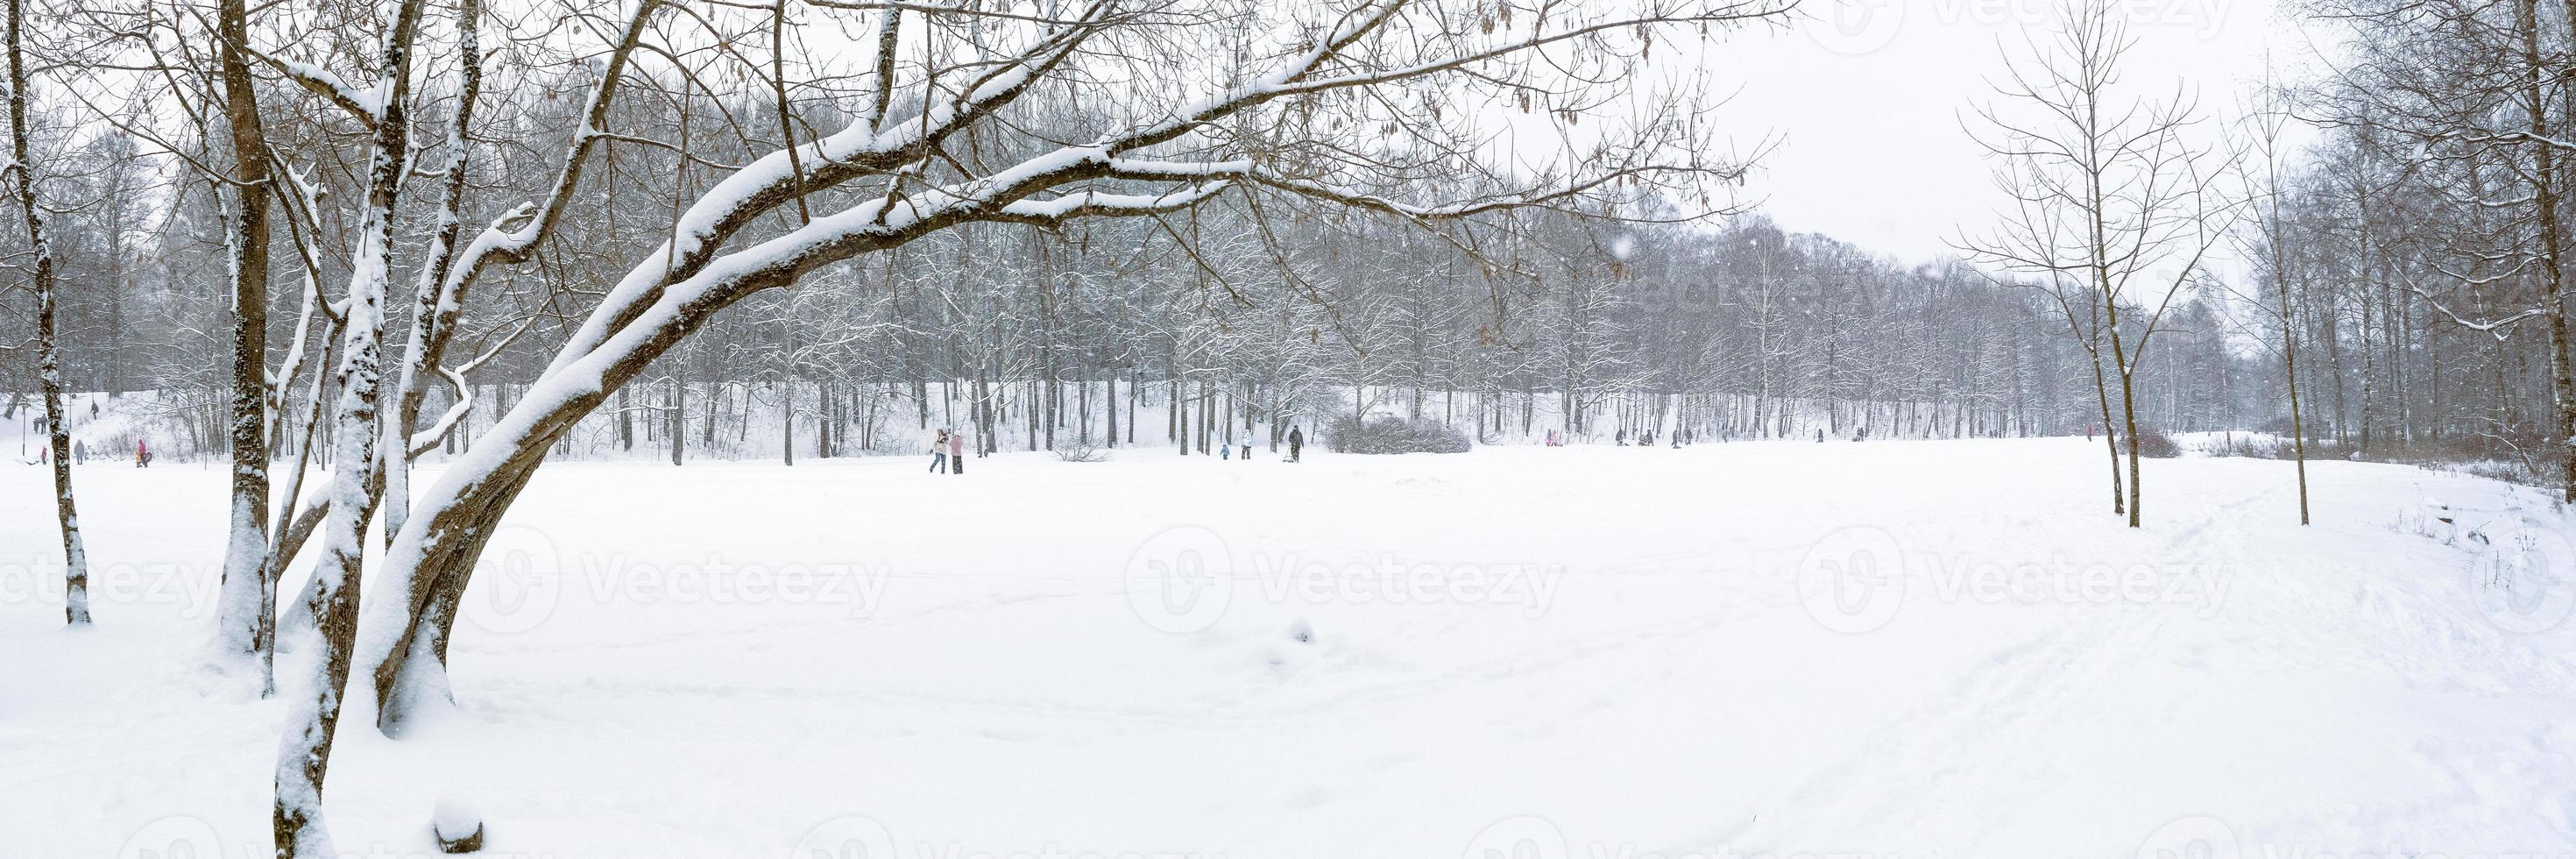 Winter forest landscape panorama in December on the eve of Christmas photo